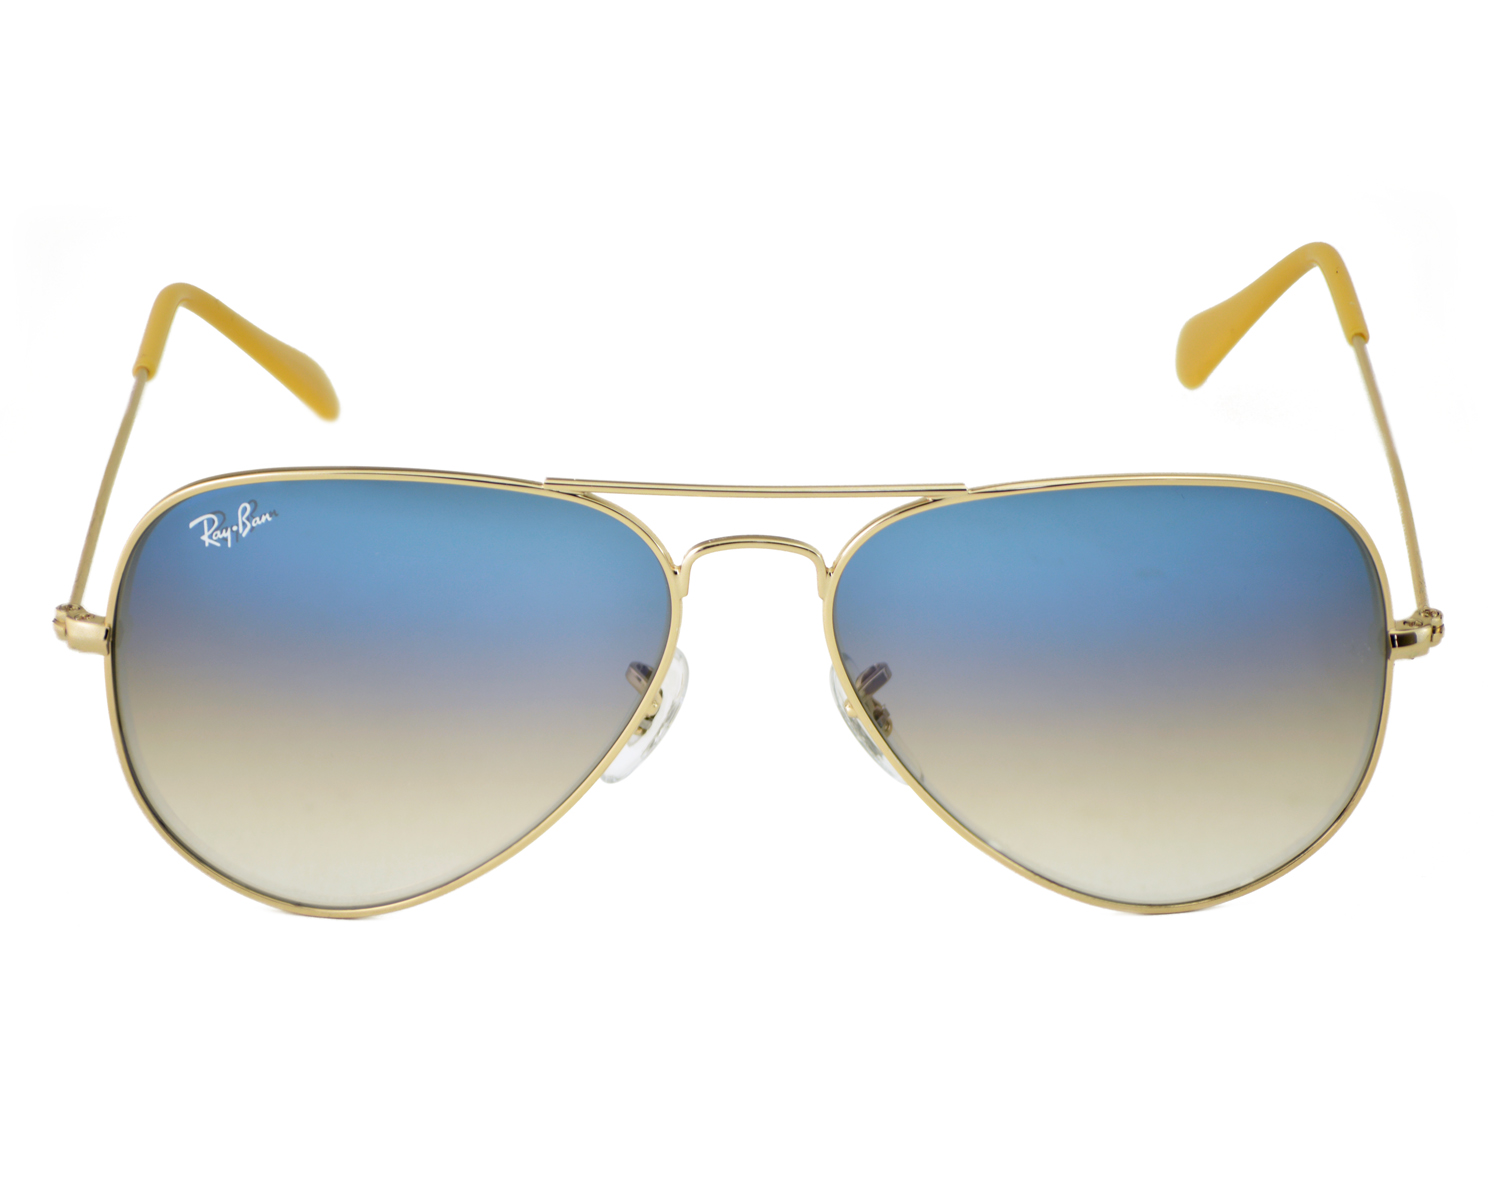 4da2b2ba84ca0 Ray-Ban RB3025 Aviator Gradient 001 3F Gold Frame Light Blue Gradient Lenses  Unisex Sunglasses 58mm